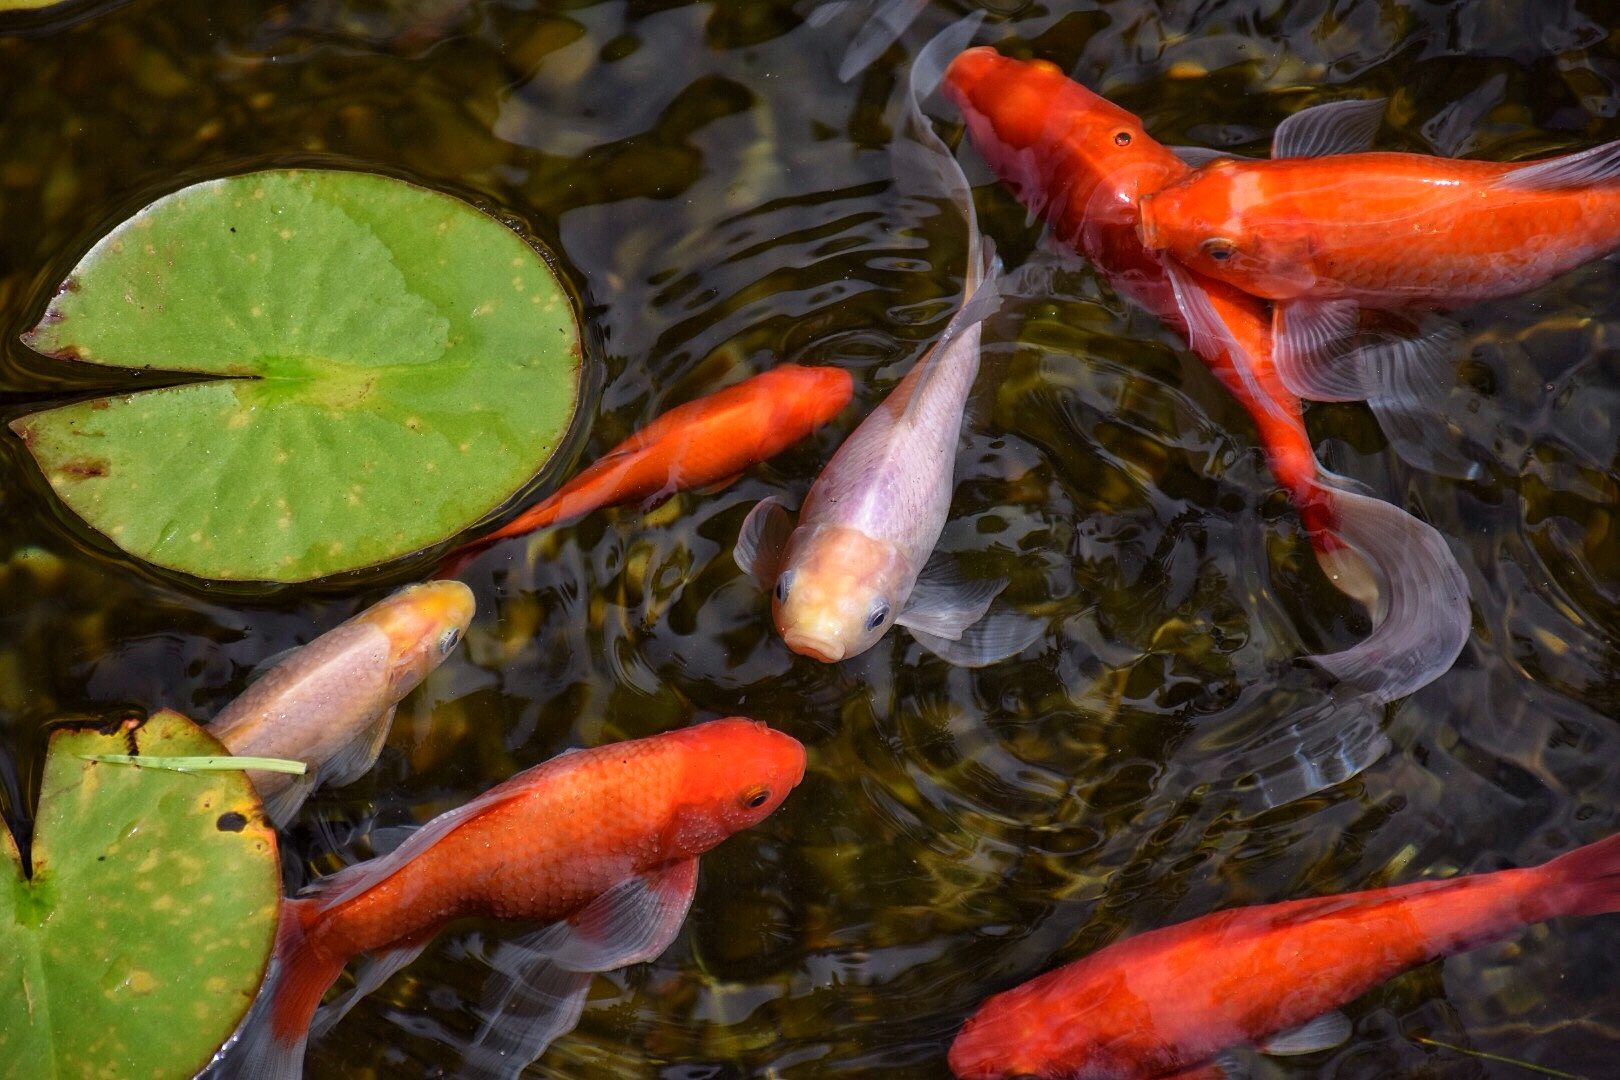 Beans & Greens Farm - farmstand koi pond